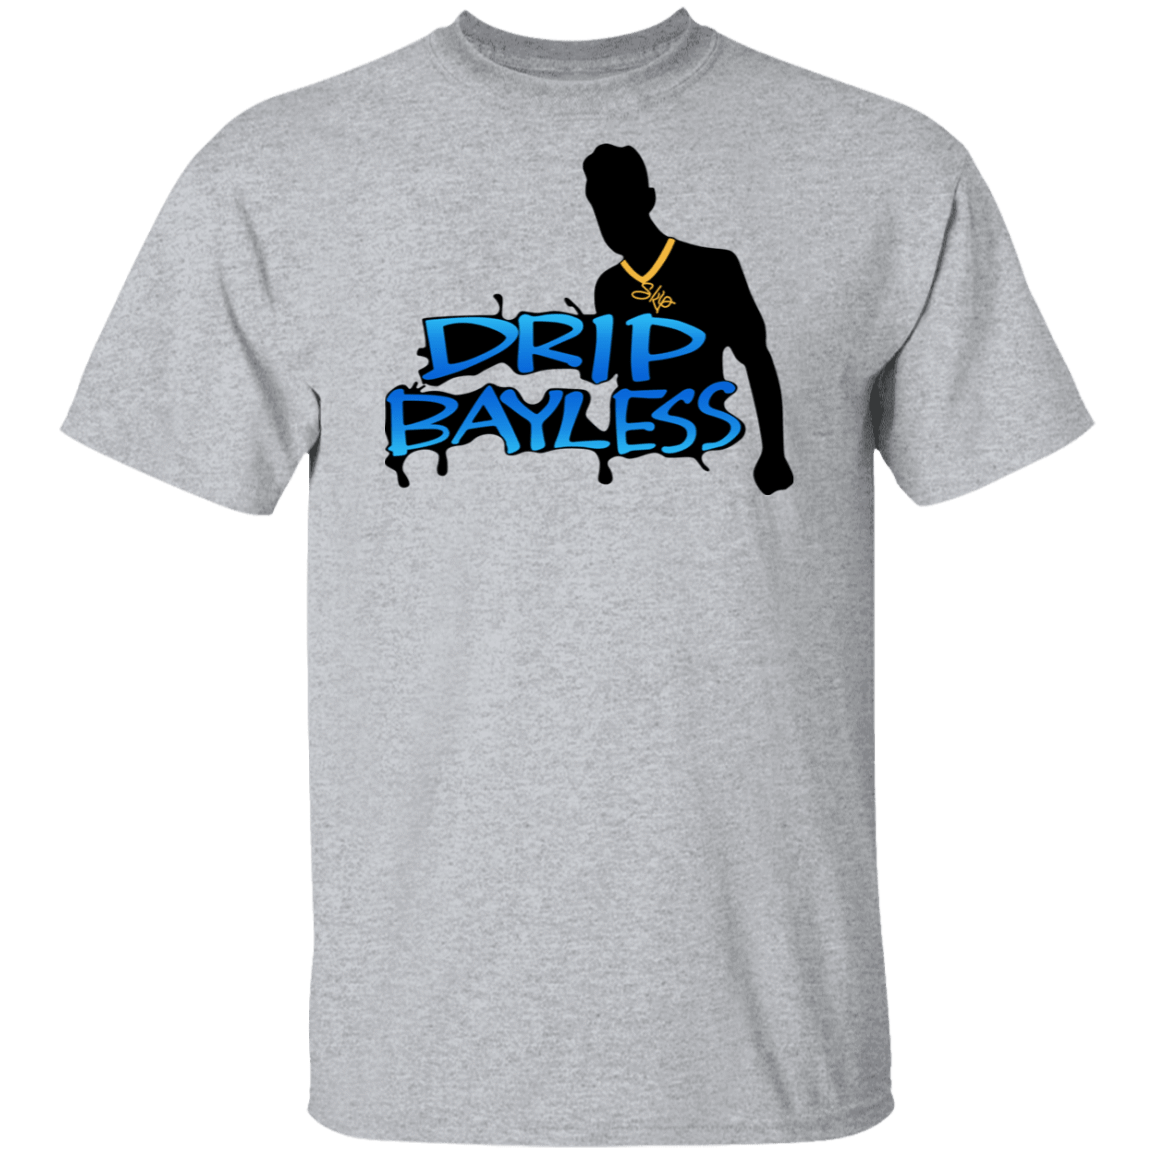 Snoop Dogg Drip Bayless T-Shirts, Hoodies, Tank 1049-9972-80393820-48200 - Tee Ript